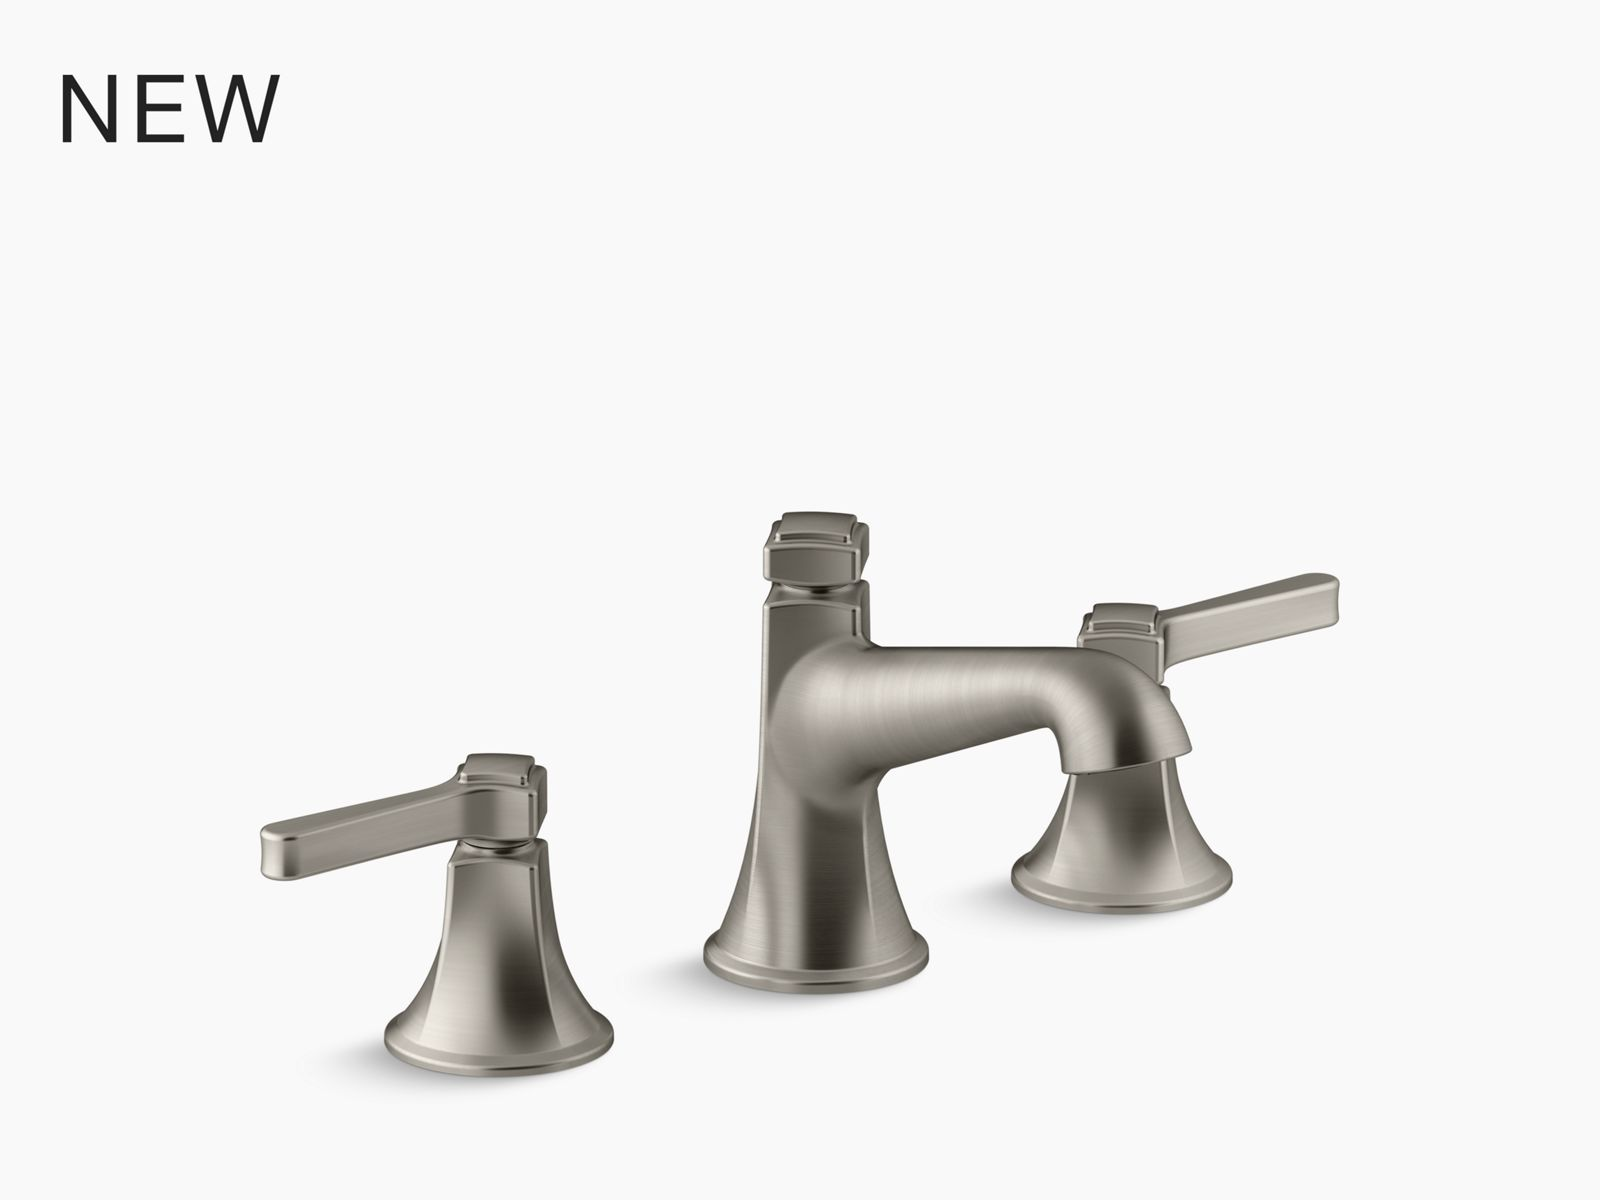 rubicon pull down kitchen sink faucet